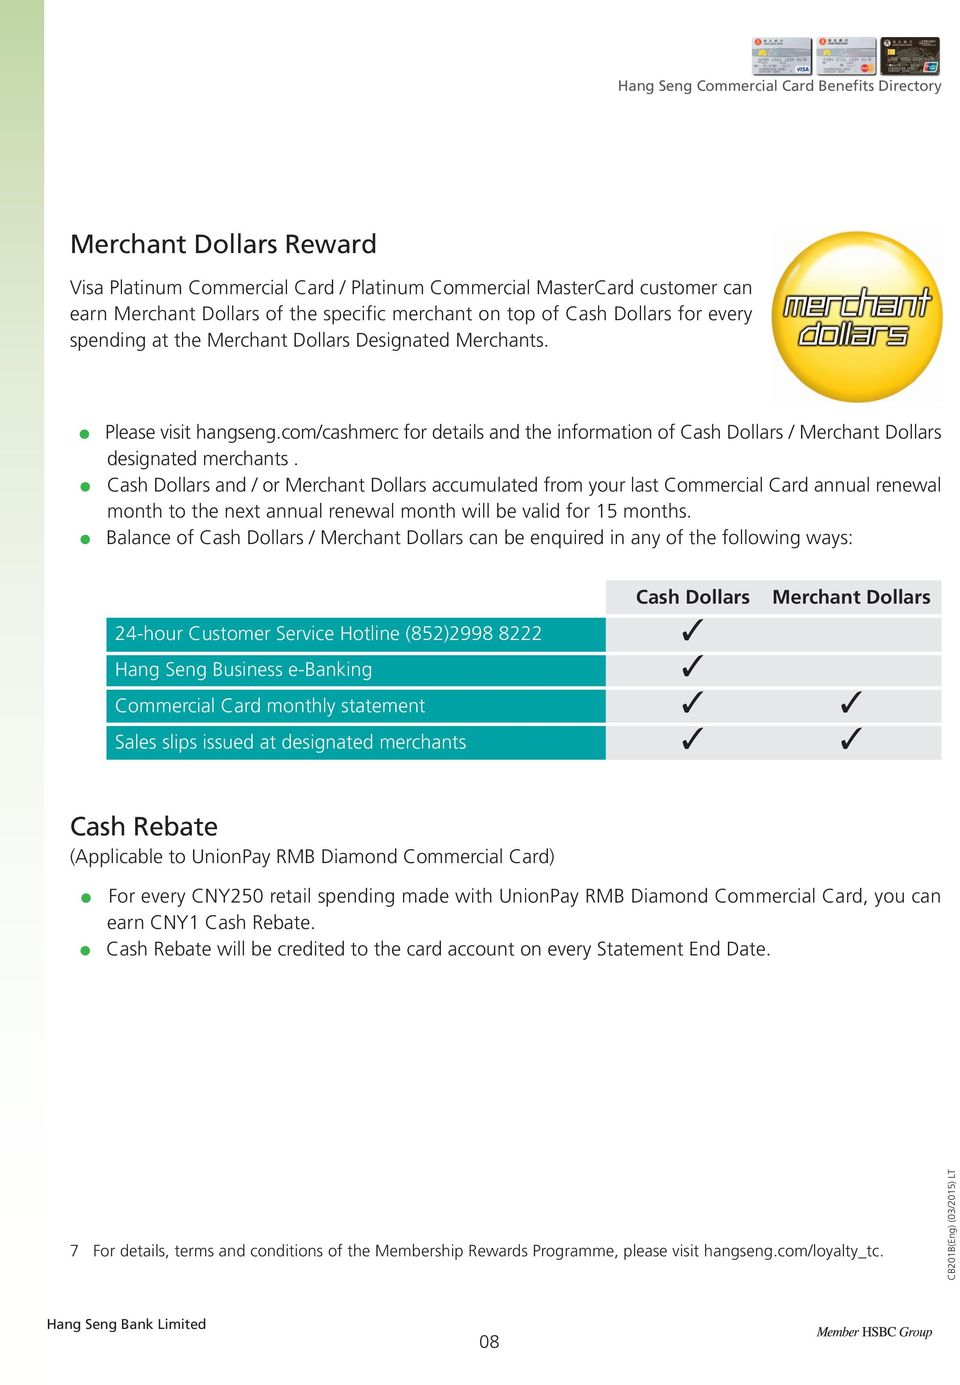 Cash Dollars and / or Merchant Dollars accumulated from your last Commercial Card annual renewal month to the next annual renewal month will be valid for 15 months.